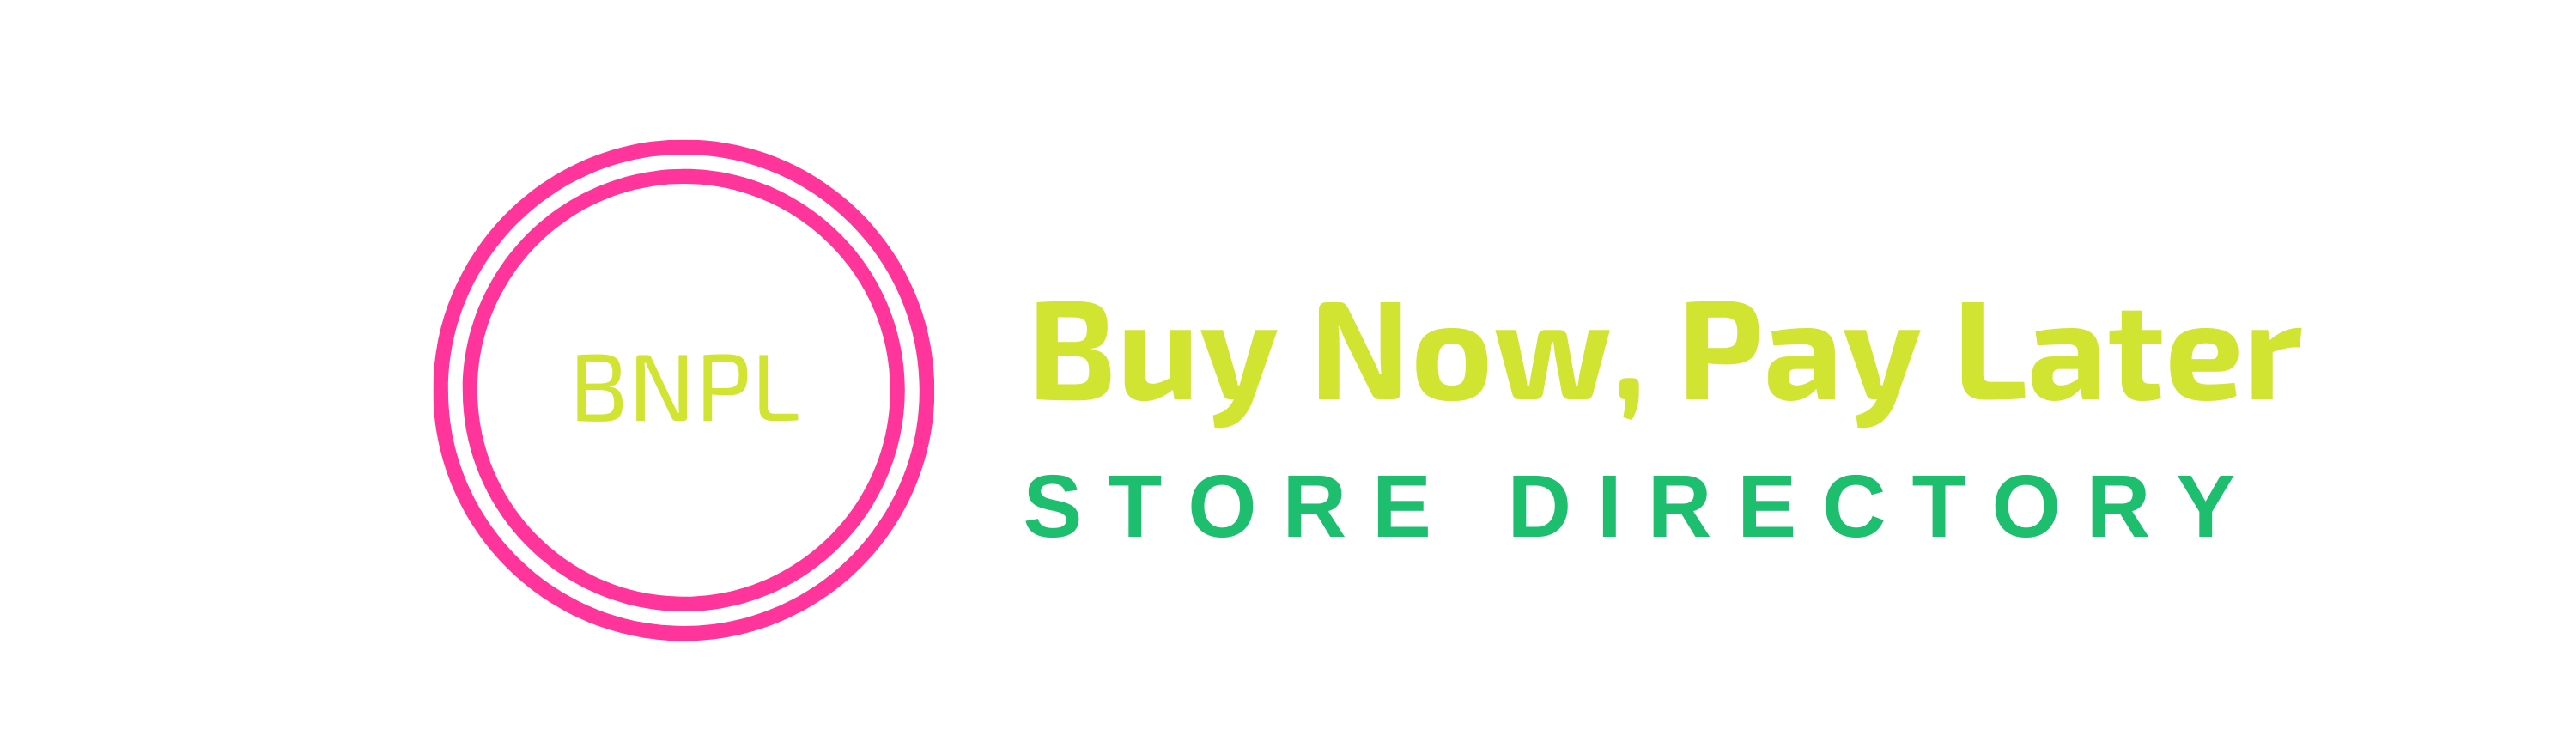 Buy Now Pay Later Stores